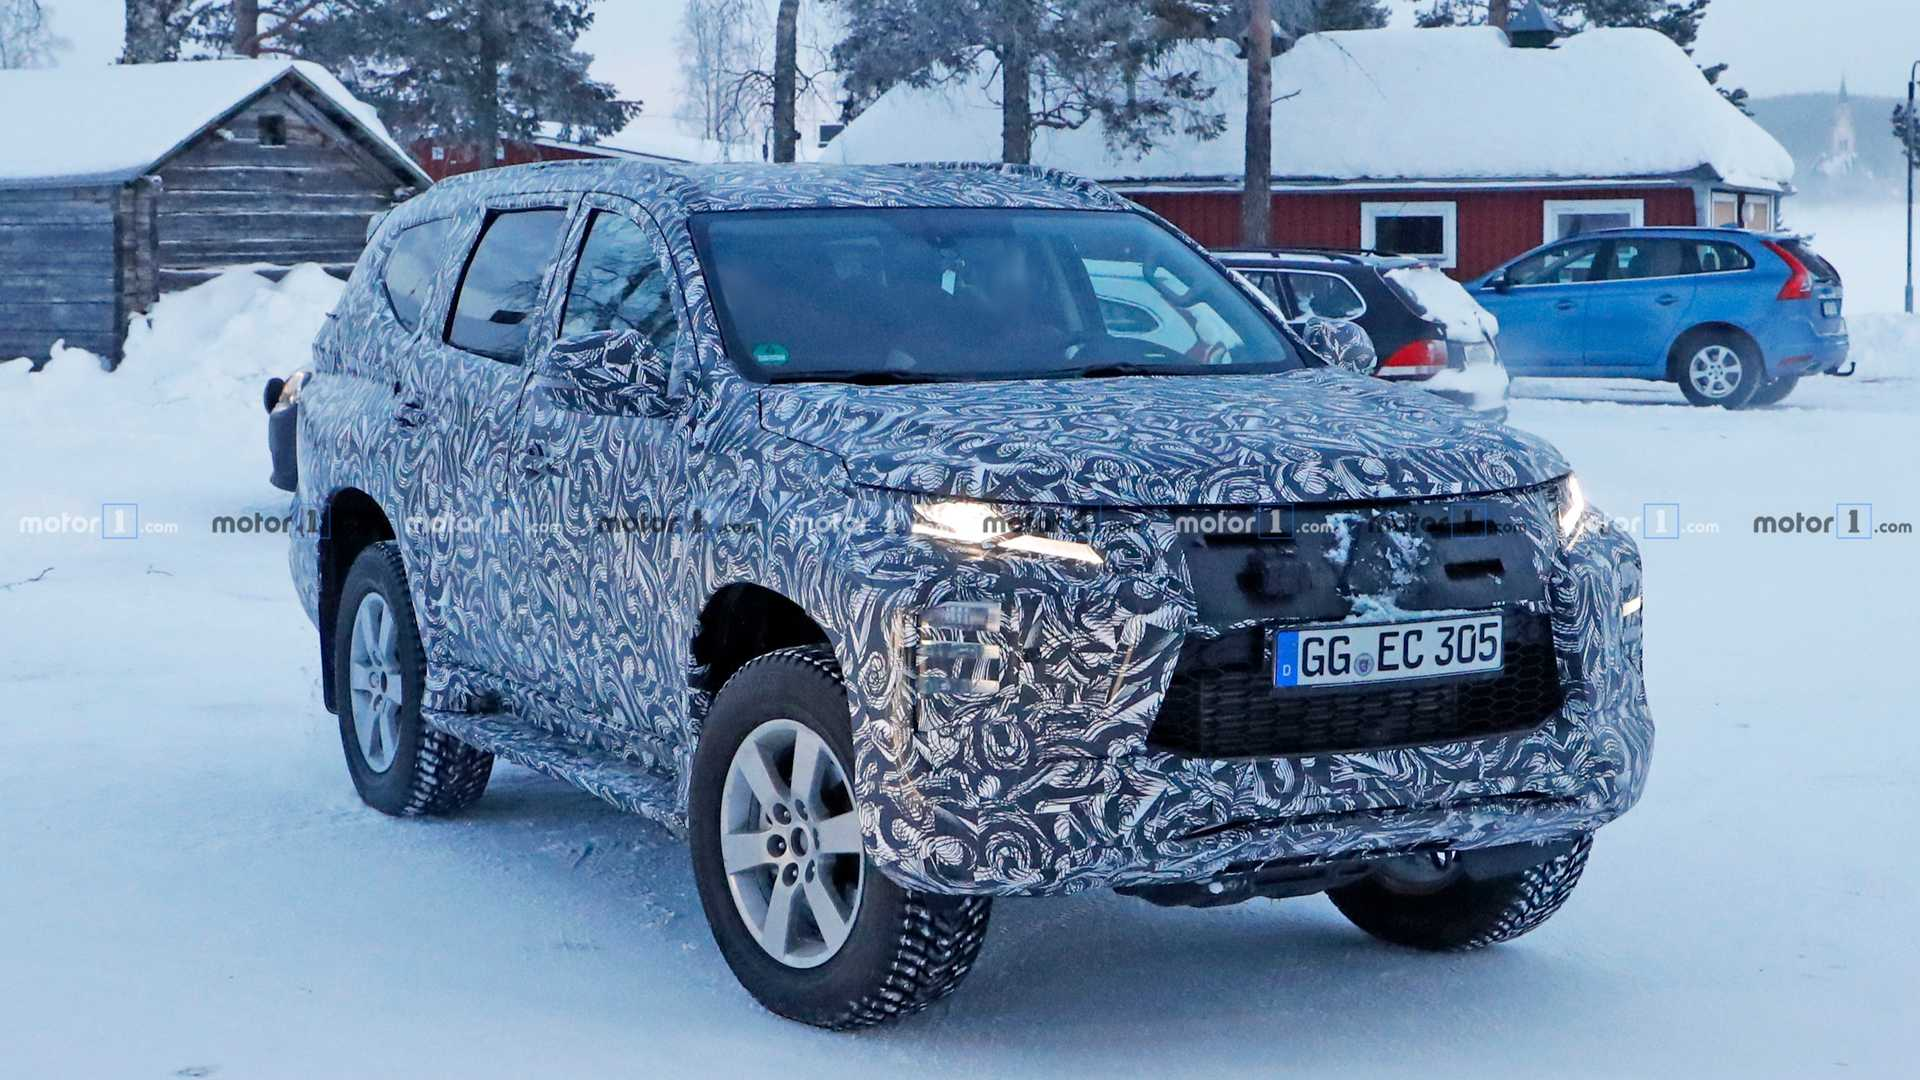 mitsubishi pajero sport facelift spied for the first time mitsubishi pajero sport facelift spied